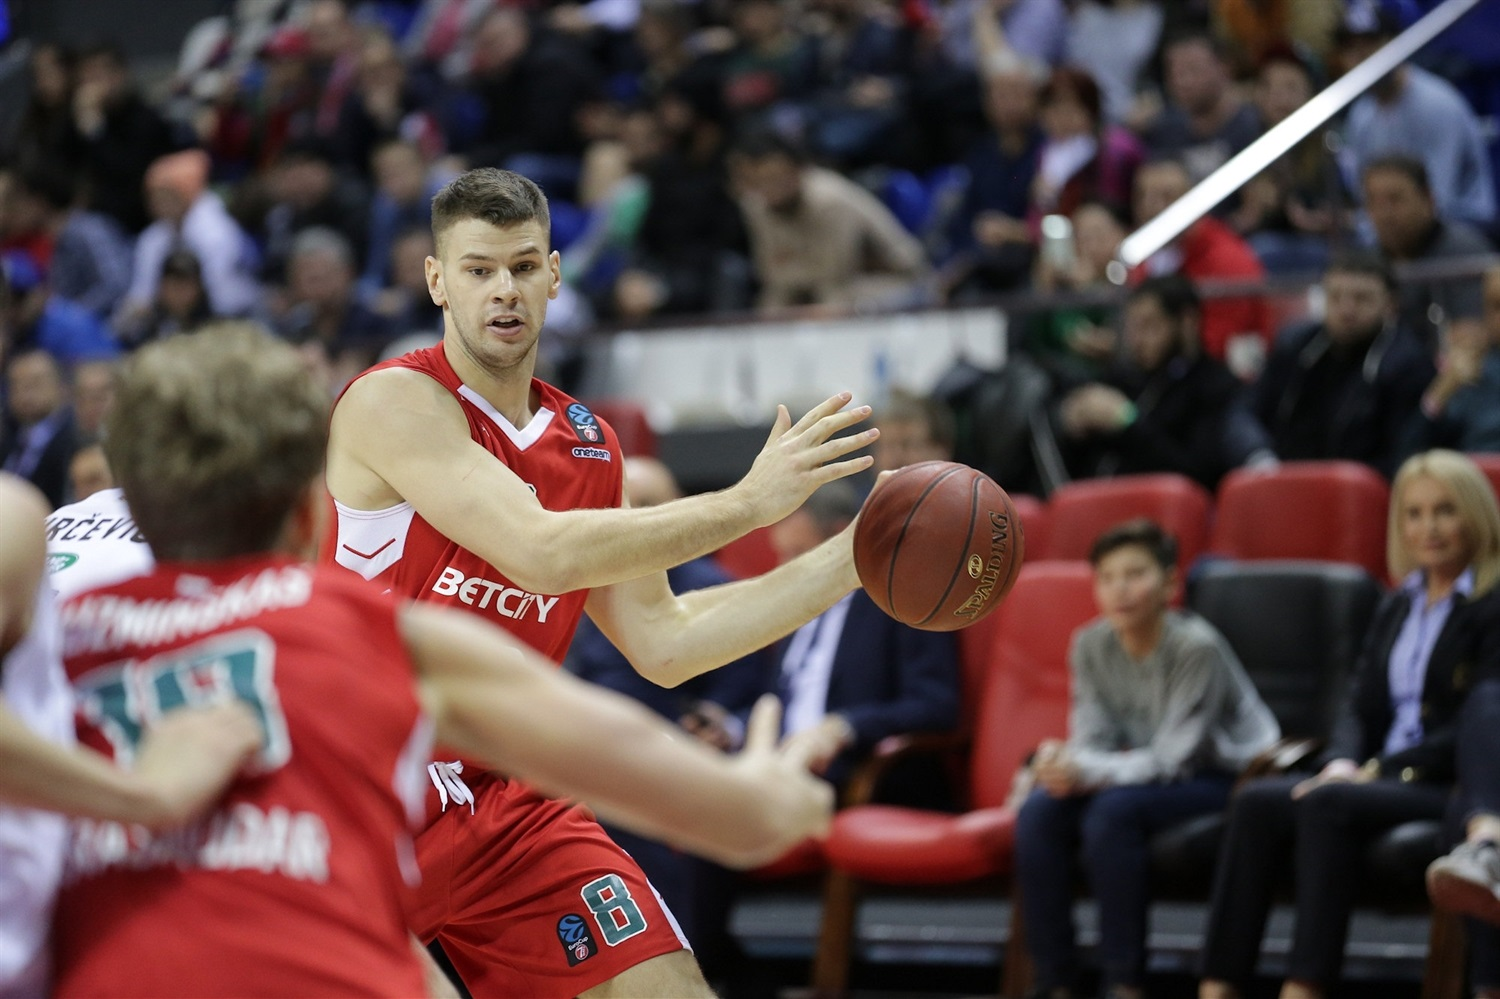 Dragan Apic - Lokomotiv Kuban Krasnodar (photo Lokomotiv) - EC19